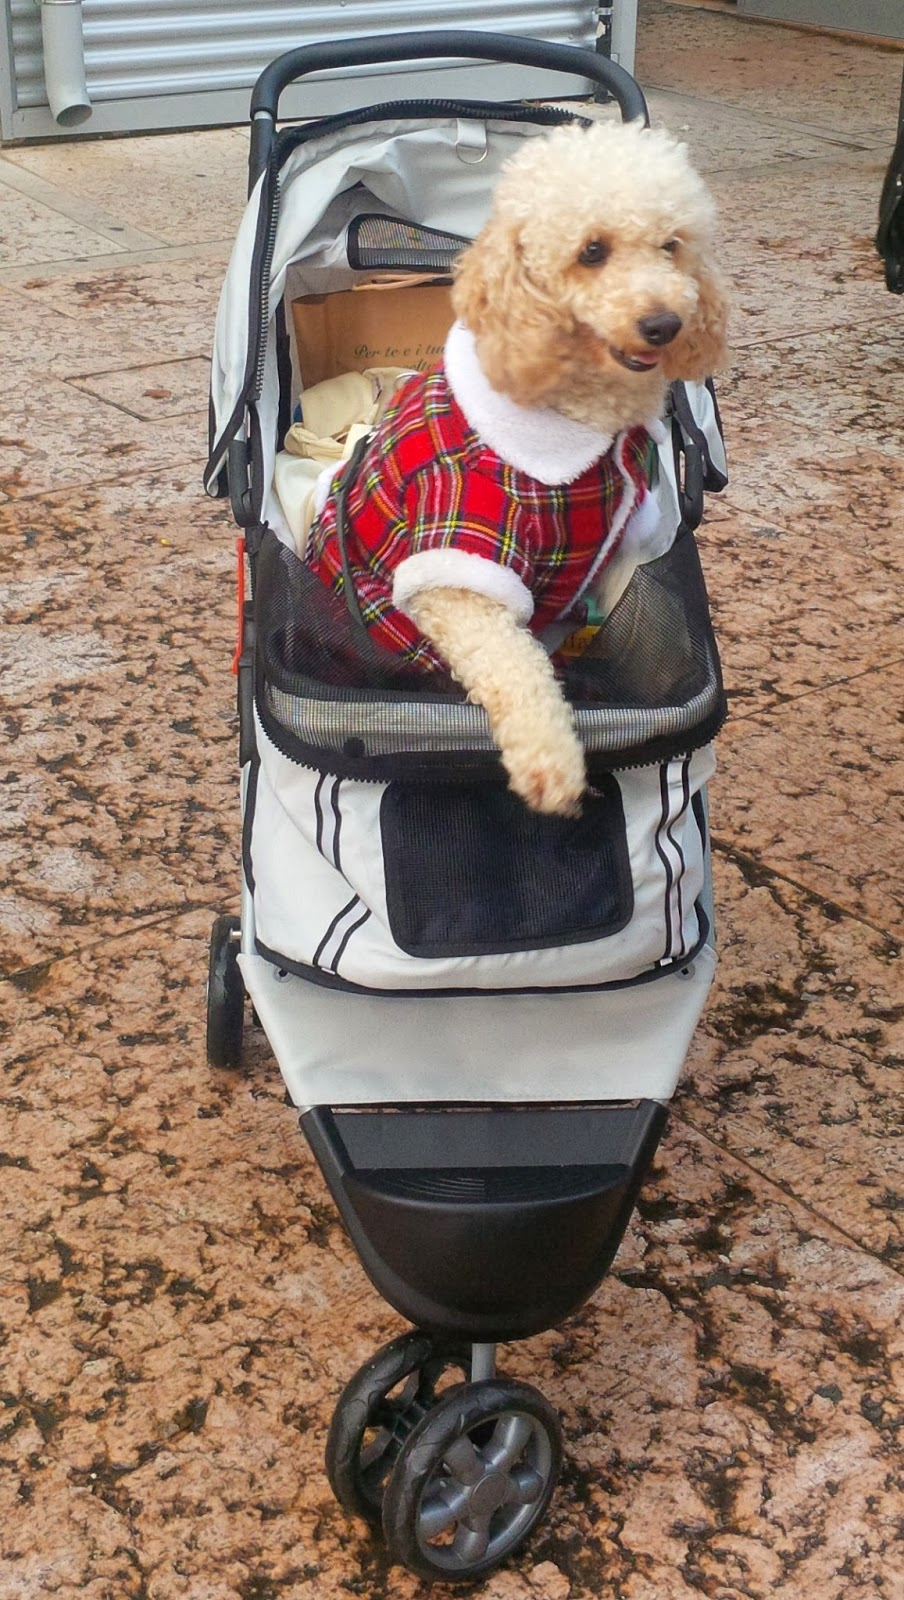 A dog in a tartan top in a stroller